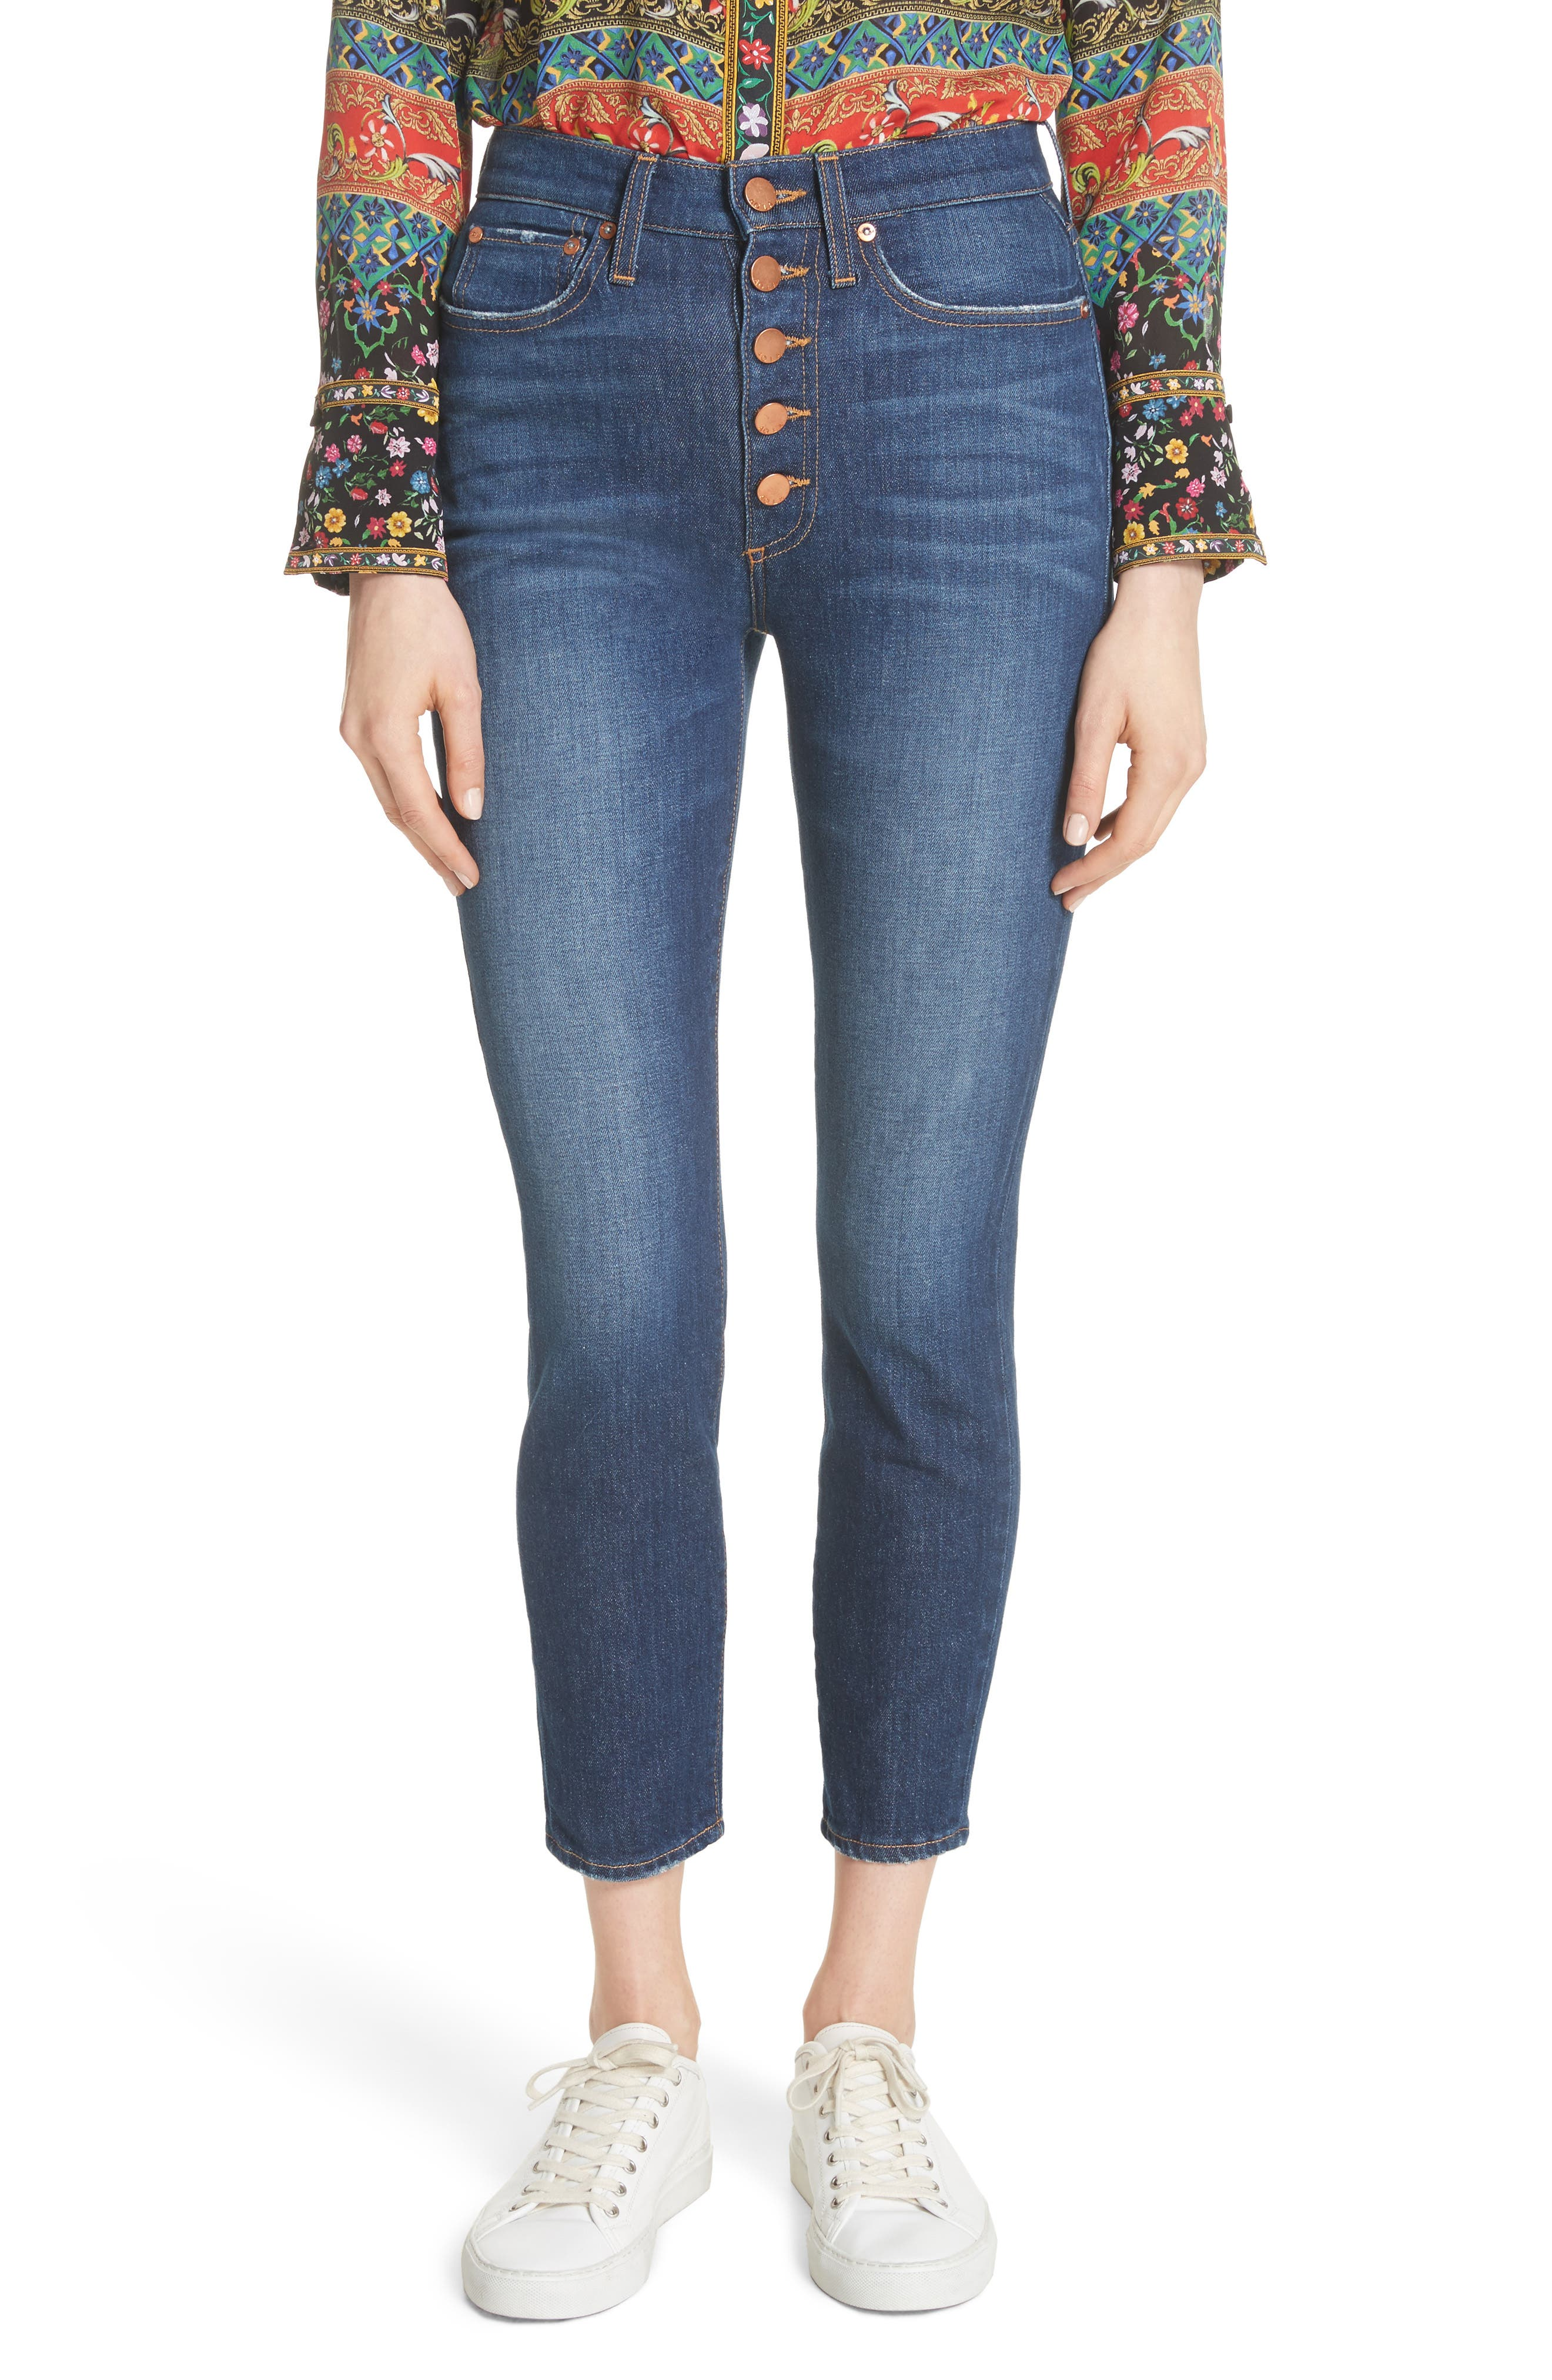 AO.LA Good High Waist Exposed Button Skinny Jeans,                         Main,                         color, Good Times